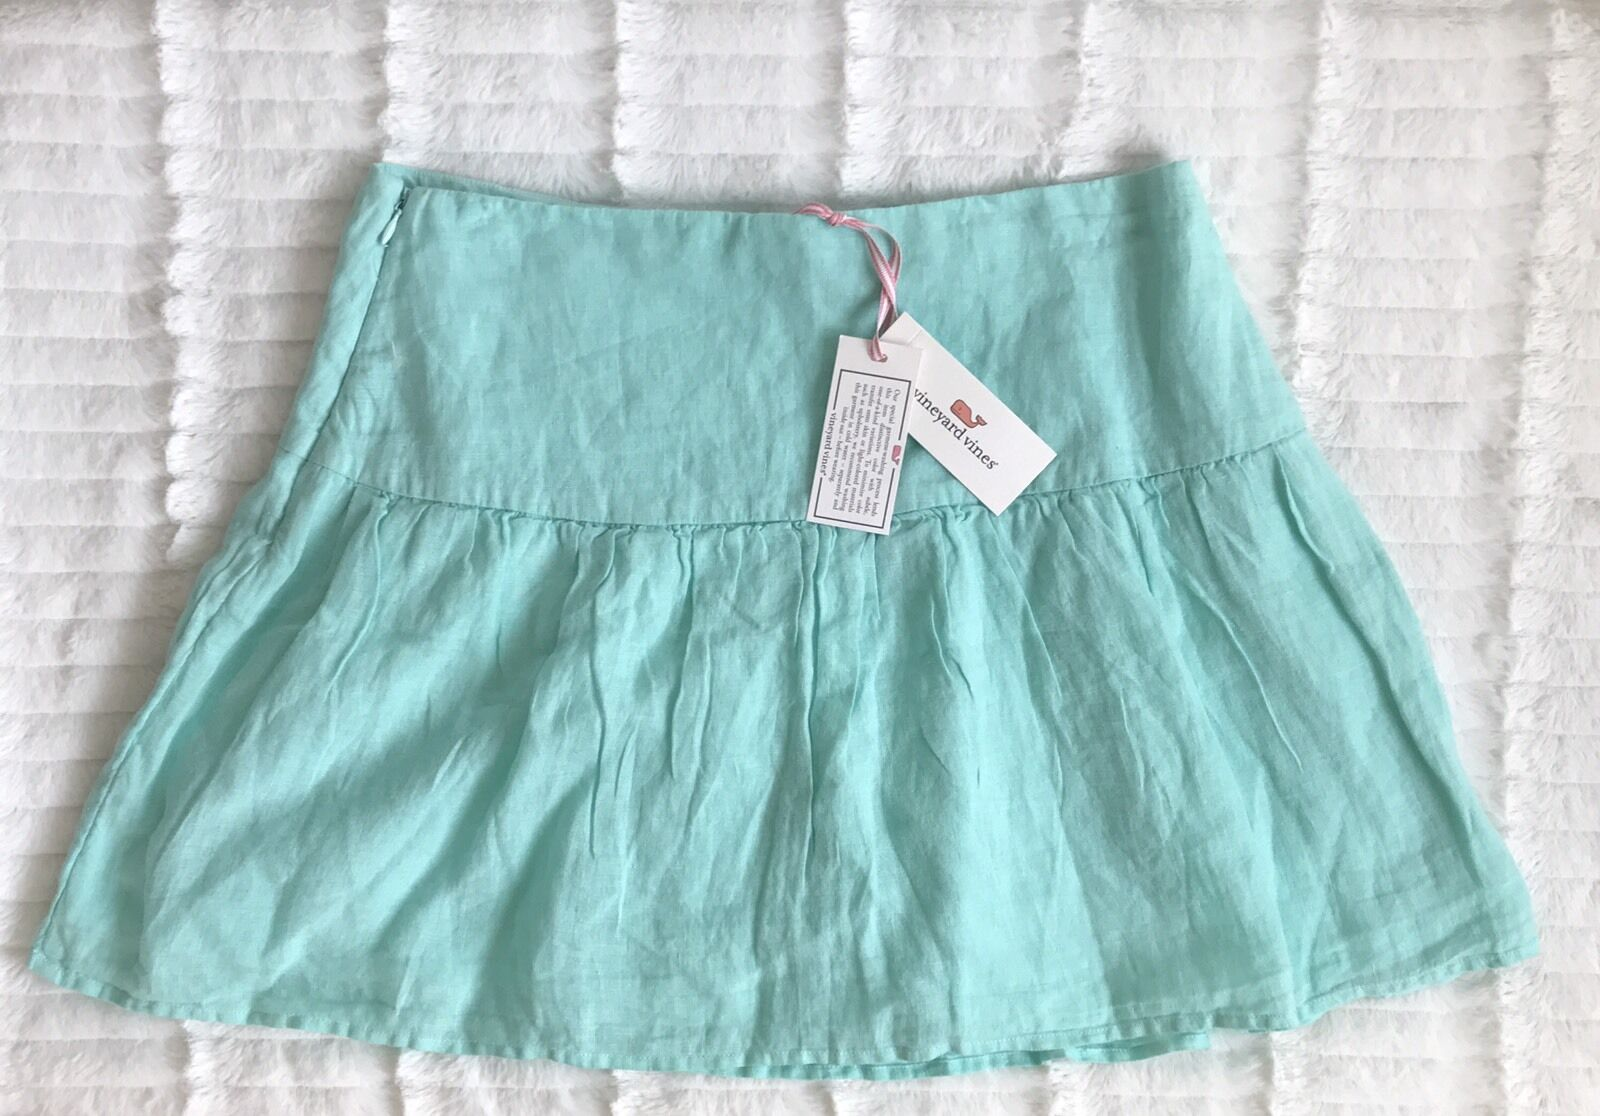 Vineyard Vines Women's 100% Linen Crystal bluee Pleated Mini Skirt Size 2 NWT  88